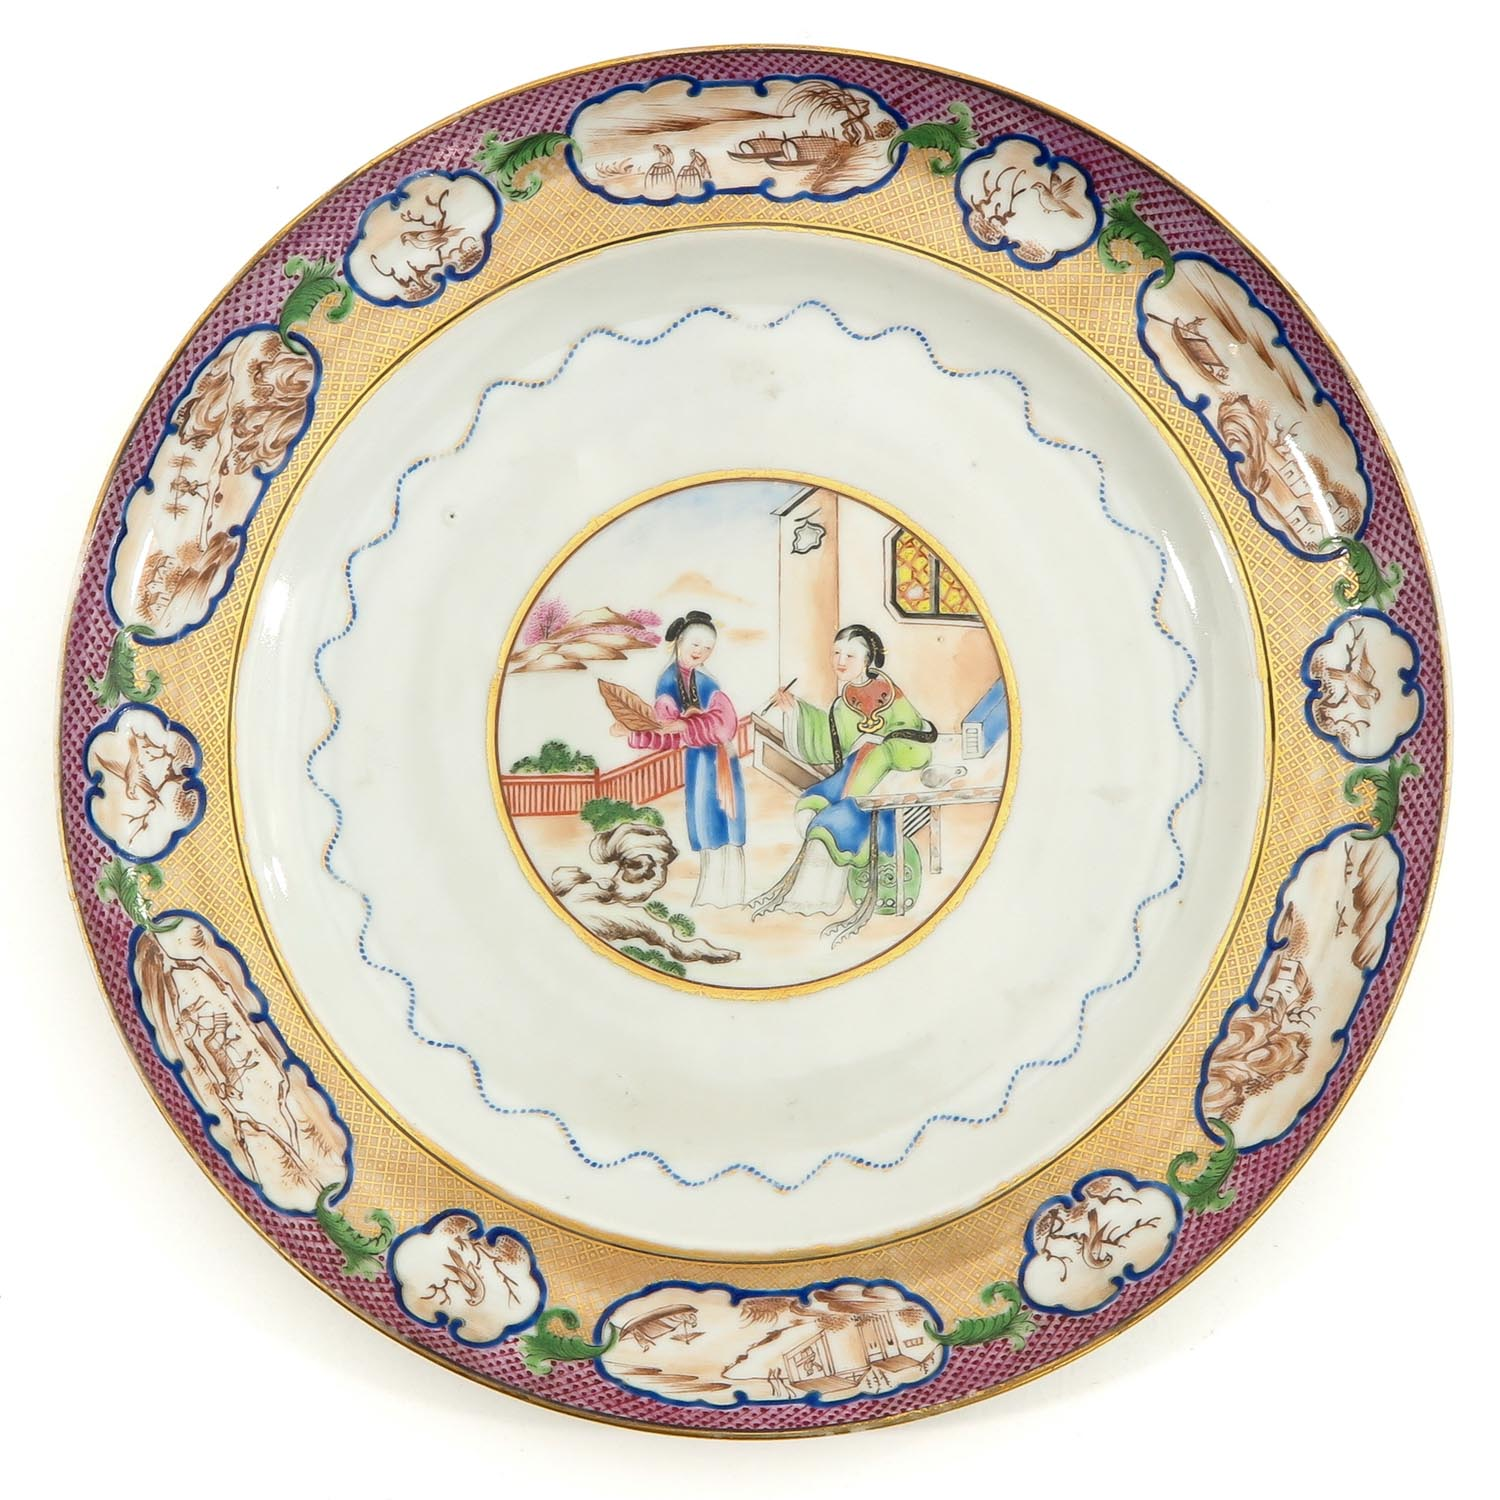 A Pair of Polychrome Decor Plates - Image 5 of 9